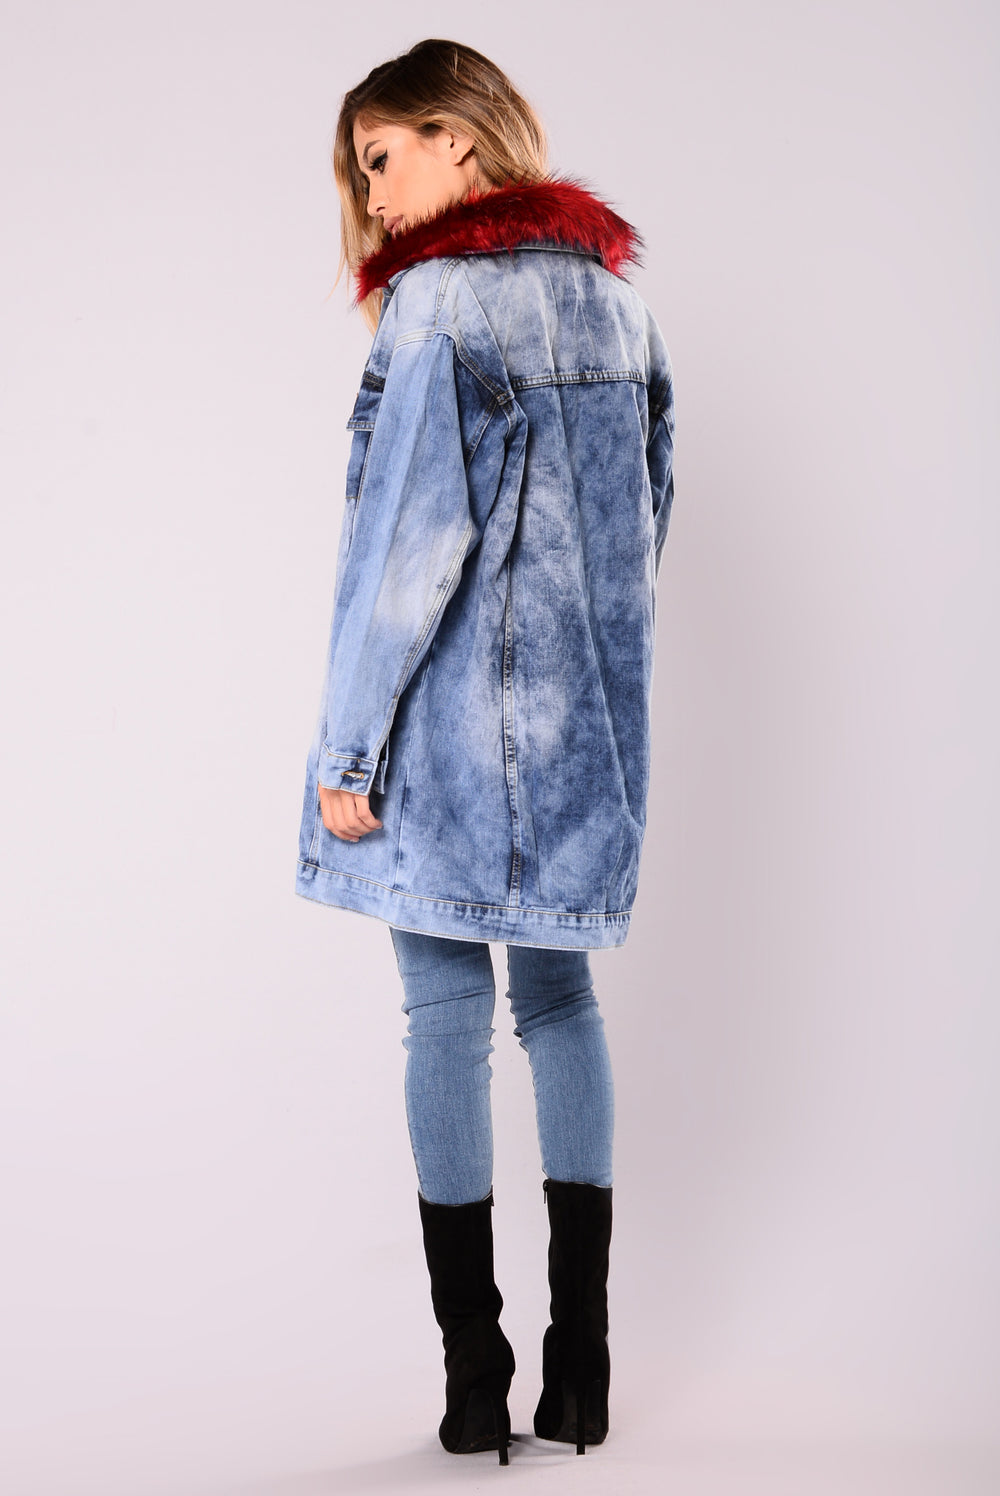 Furever And Always Denim Jacket - Light Wash